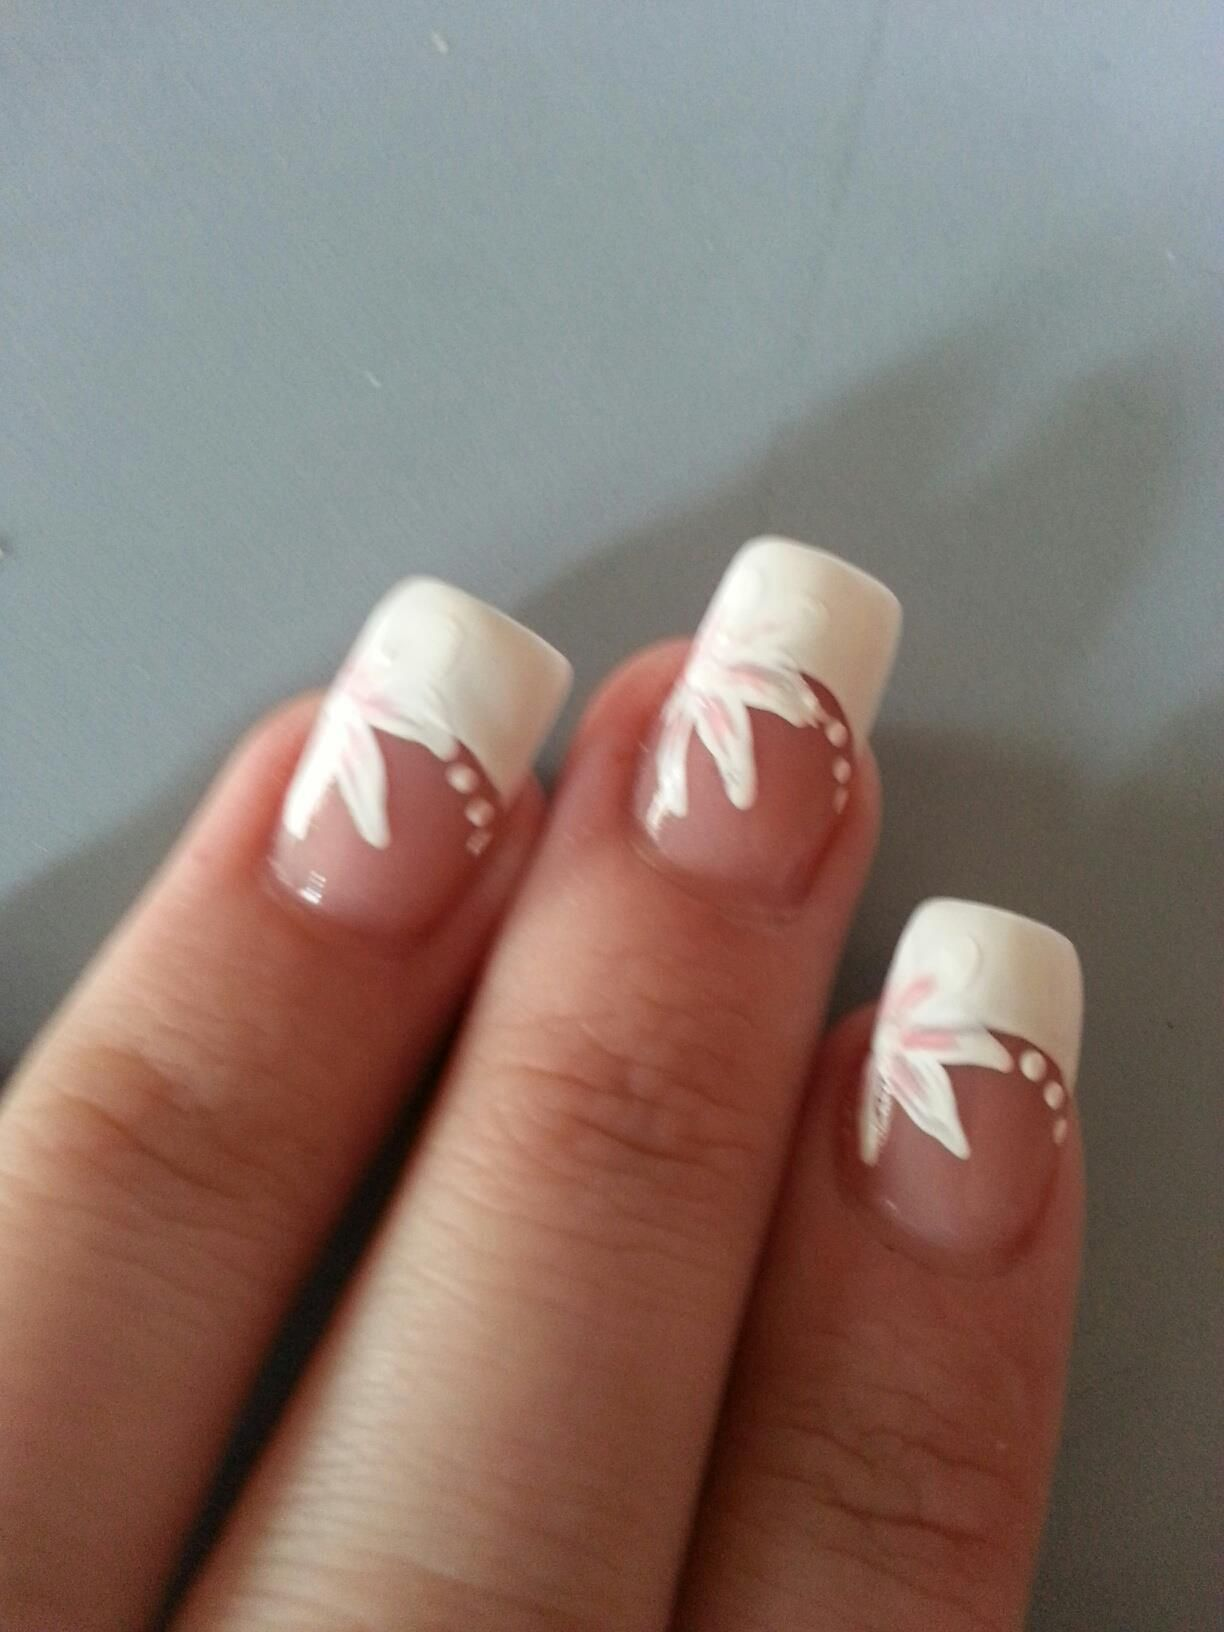 White and pink flower acrylic nail design nails pinterest white and pink flower acrylic nail design prinsesfo Image collections